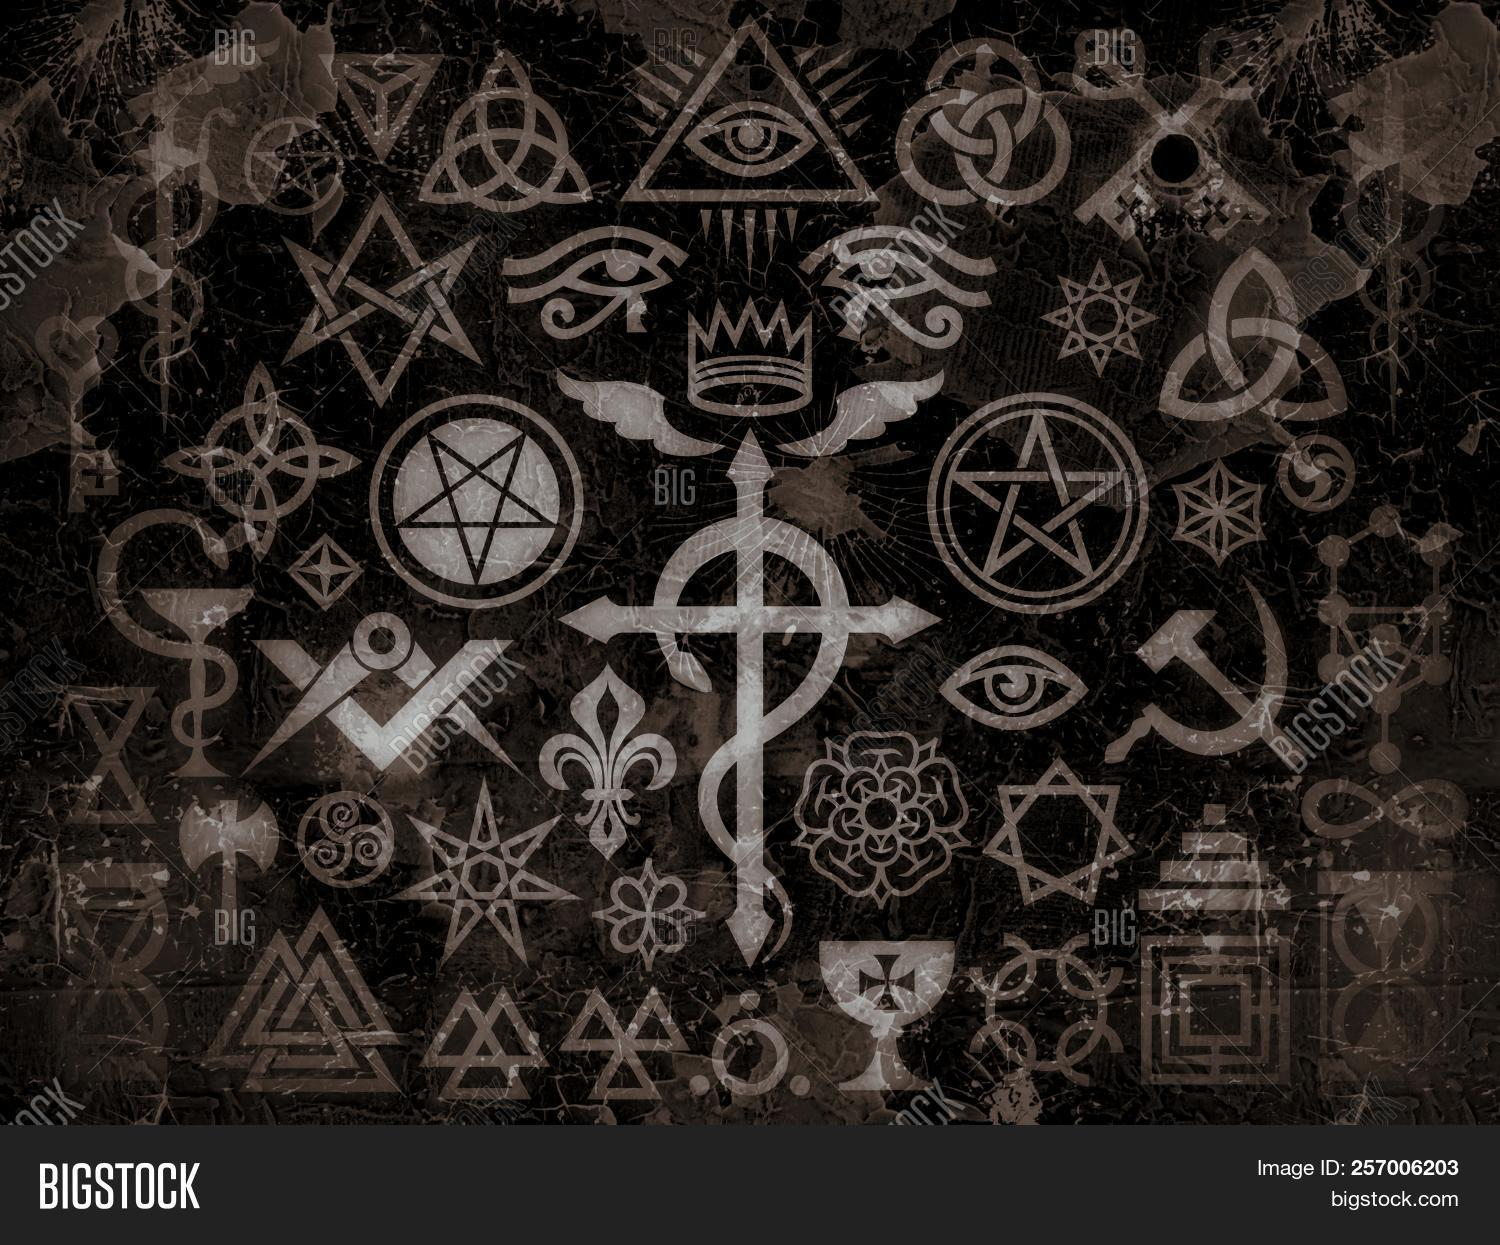 Medieval Occult Signs Image Photo Free Trial Bigstock